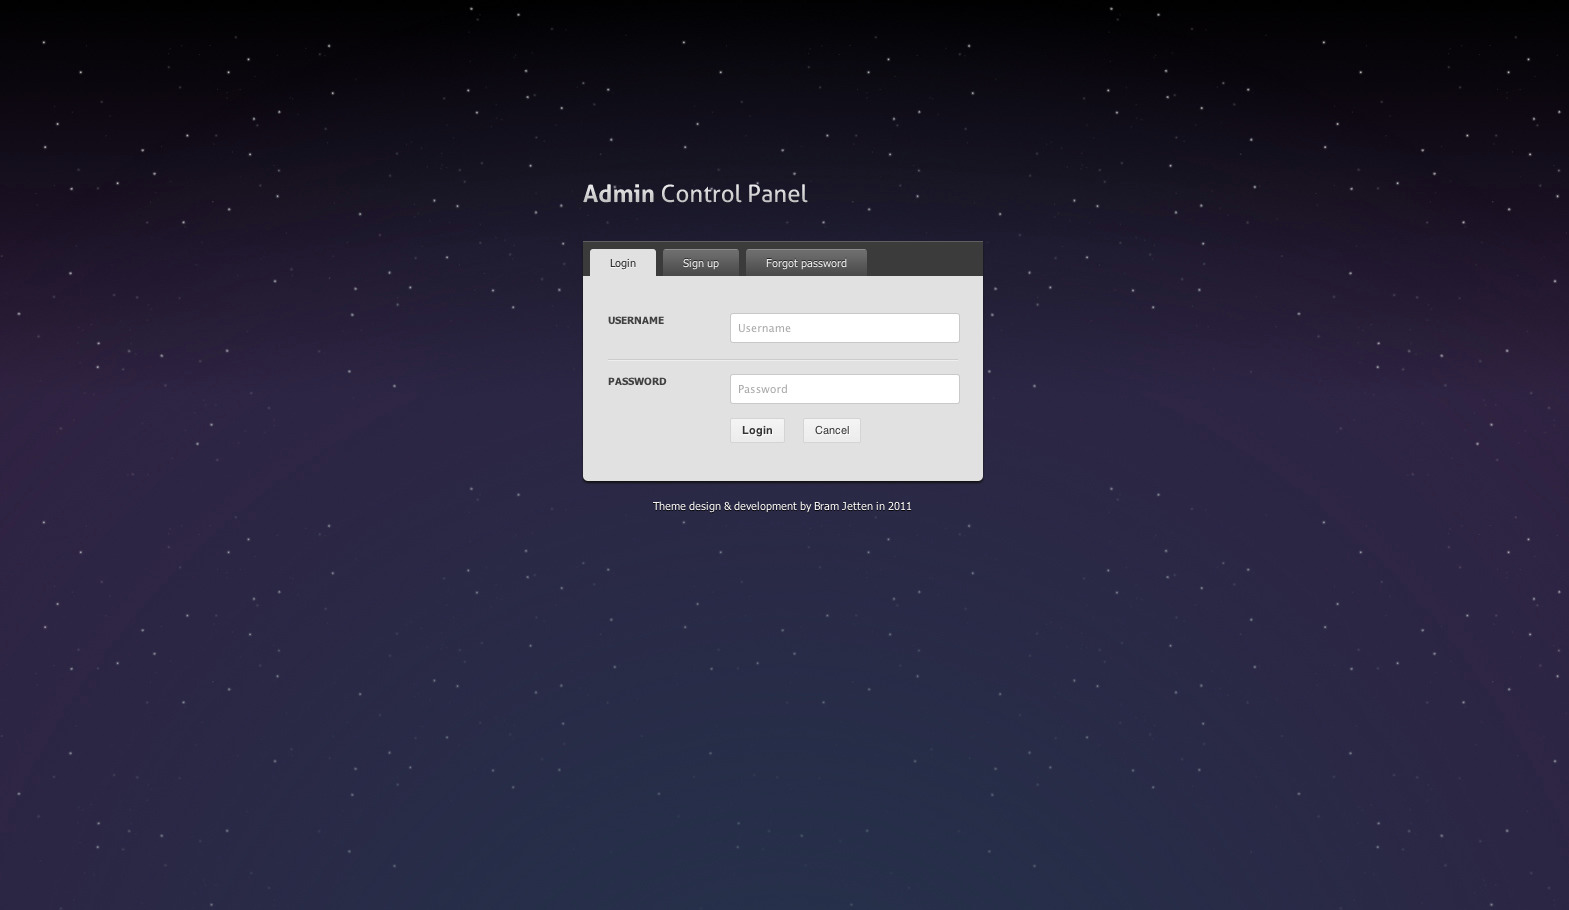 Admin Control Panel v2 - Login page